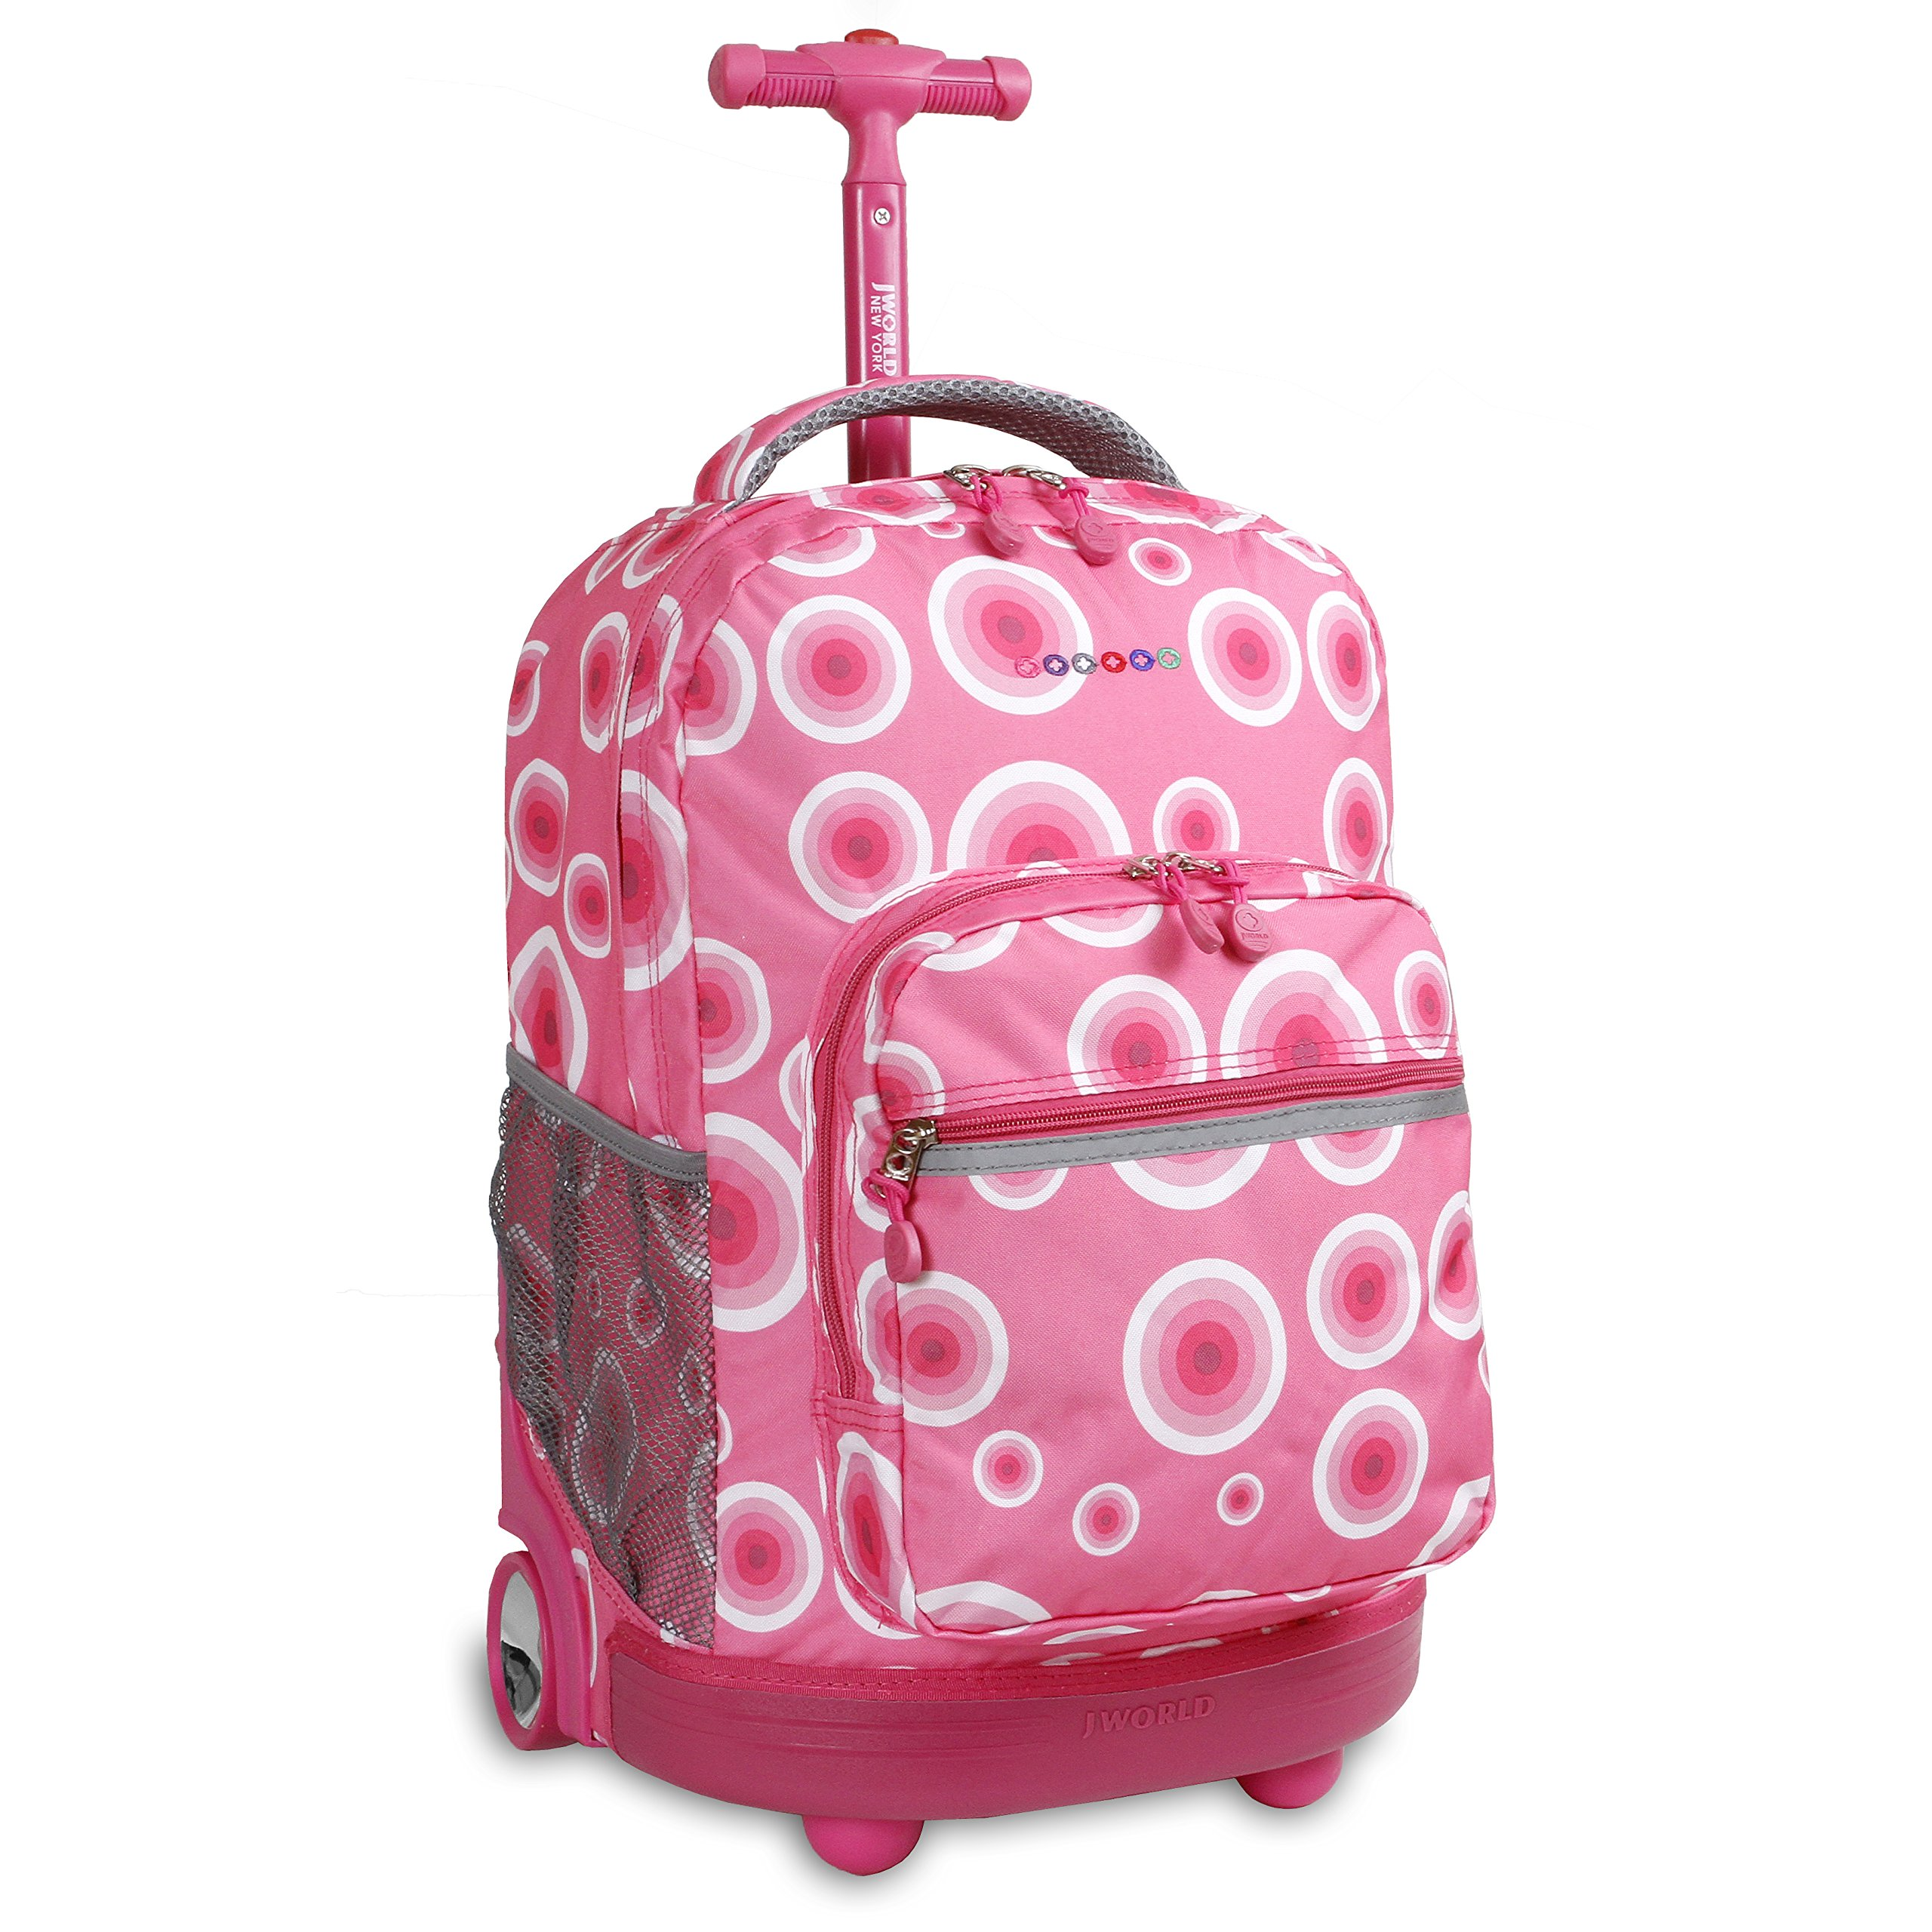 J World New York Sunrise Rolling Backpack, Pink Target, One Size by J World New York